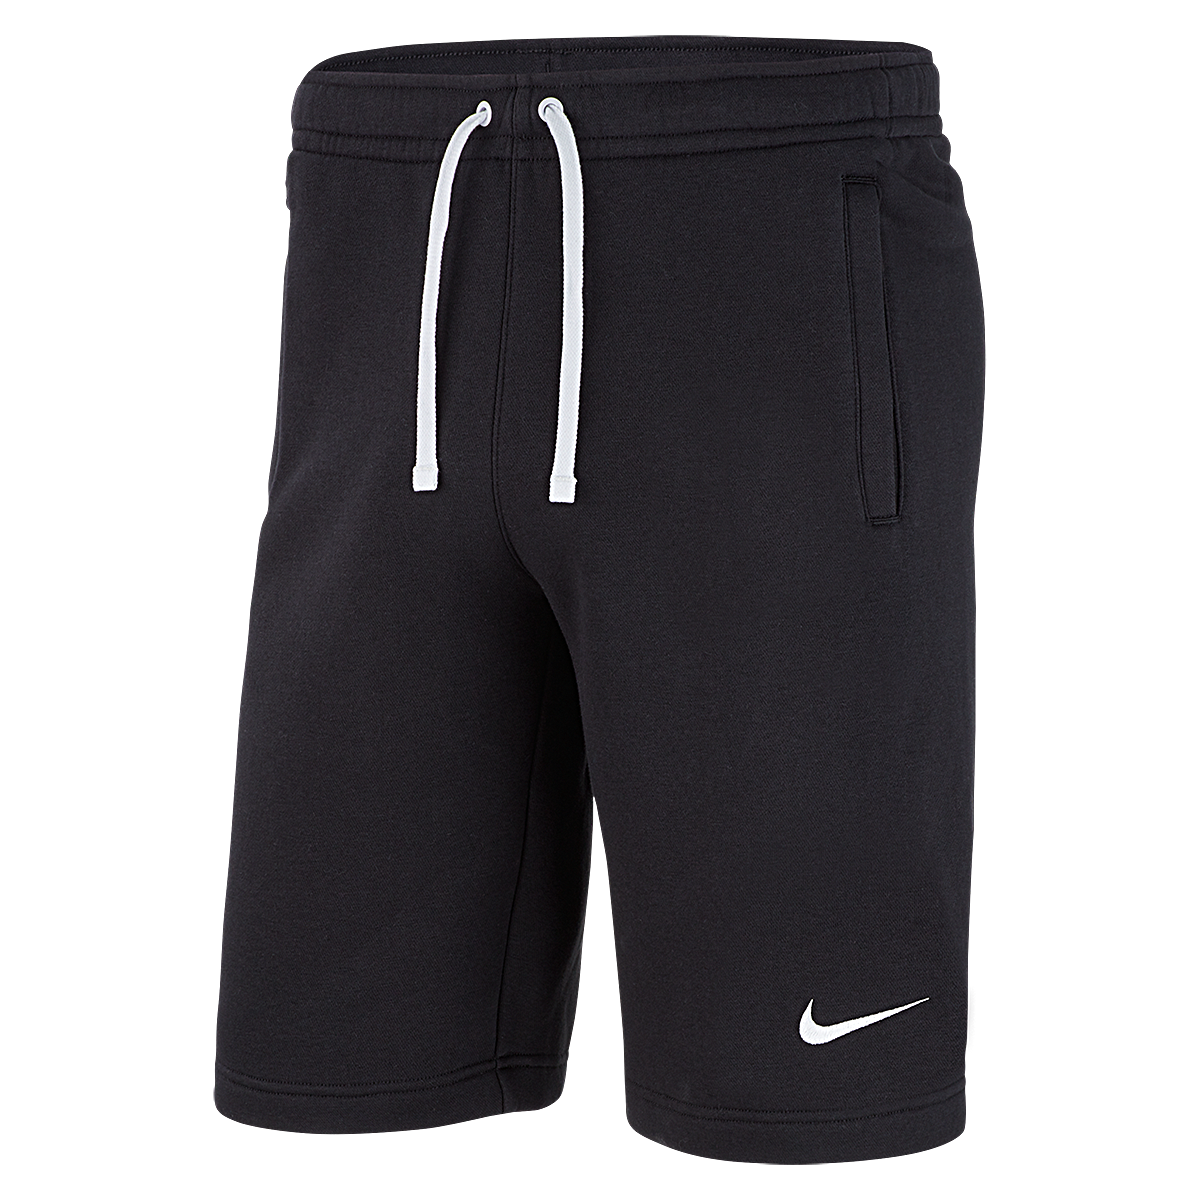 Nike Herren Hose Trainingshose TEAM CLUB 19 SHORTS schwarz Herren ...